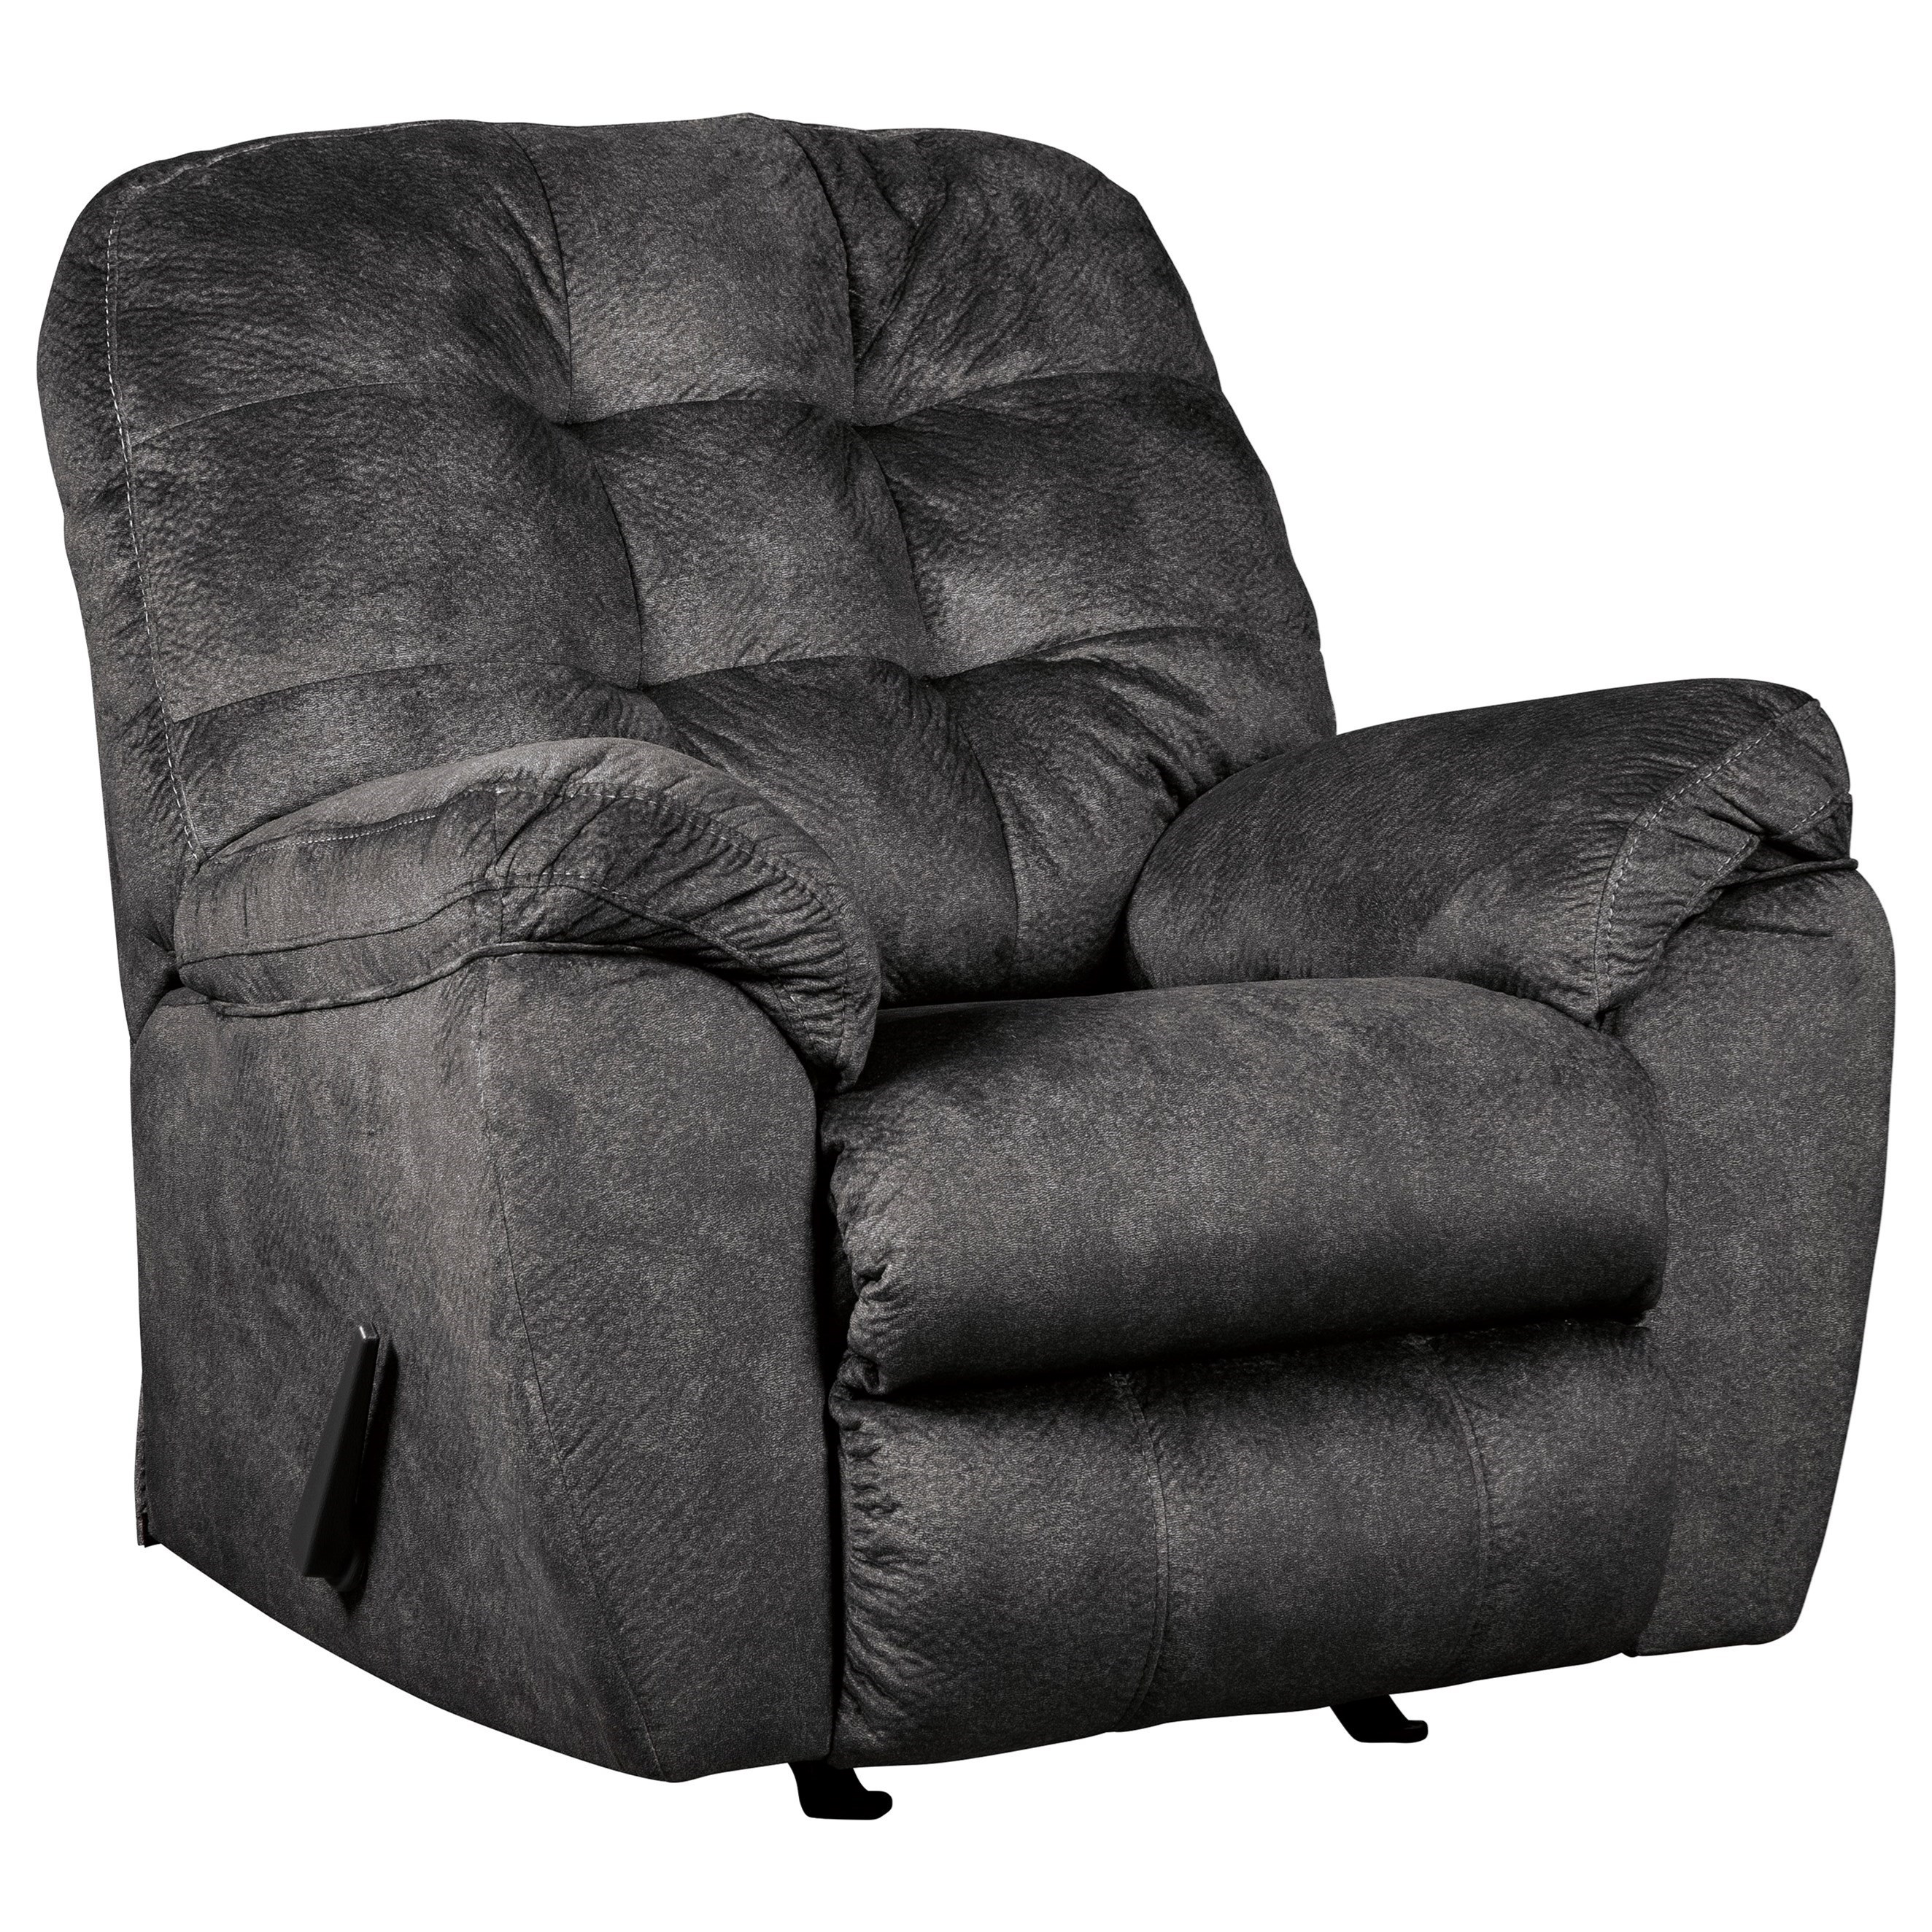 Accrington Rocker Recliner by Signature Design by Ashley at Value City Furniture